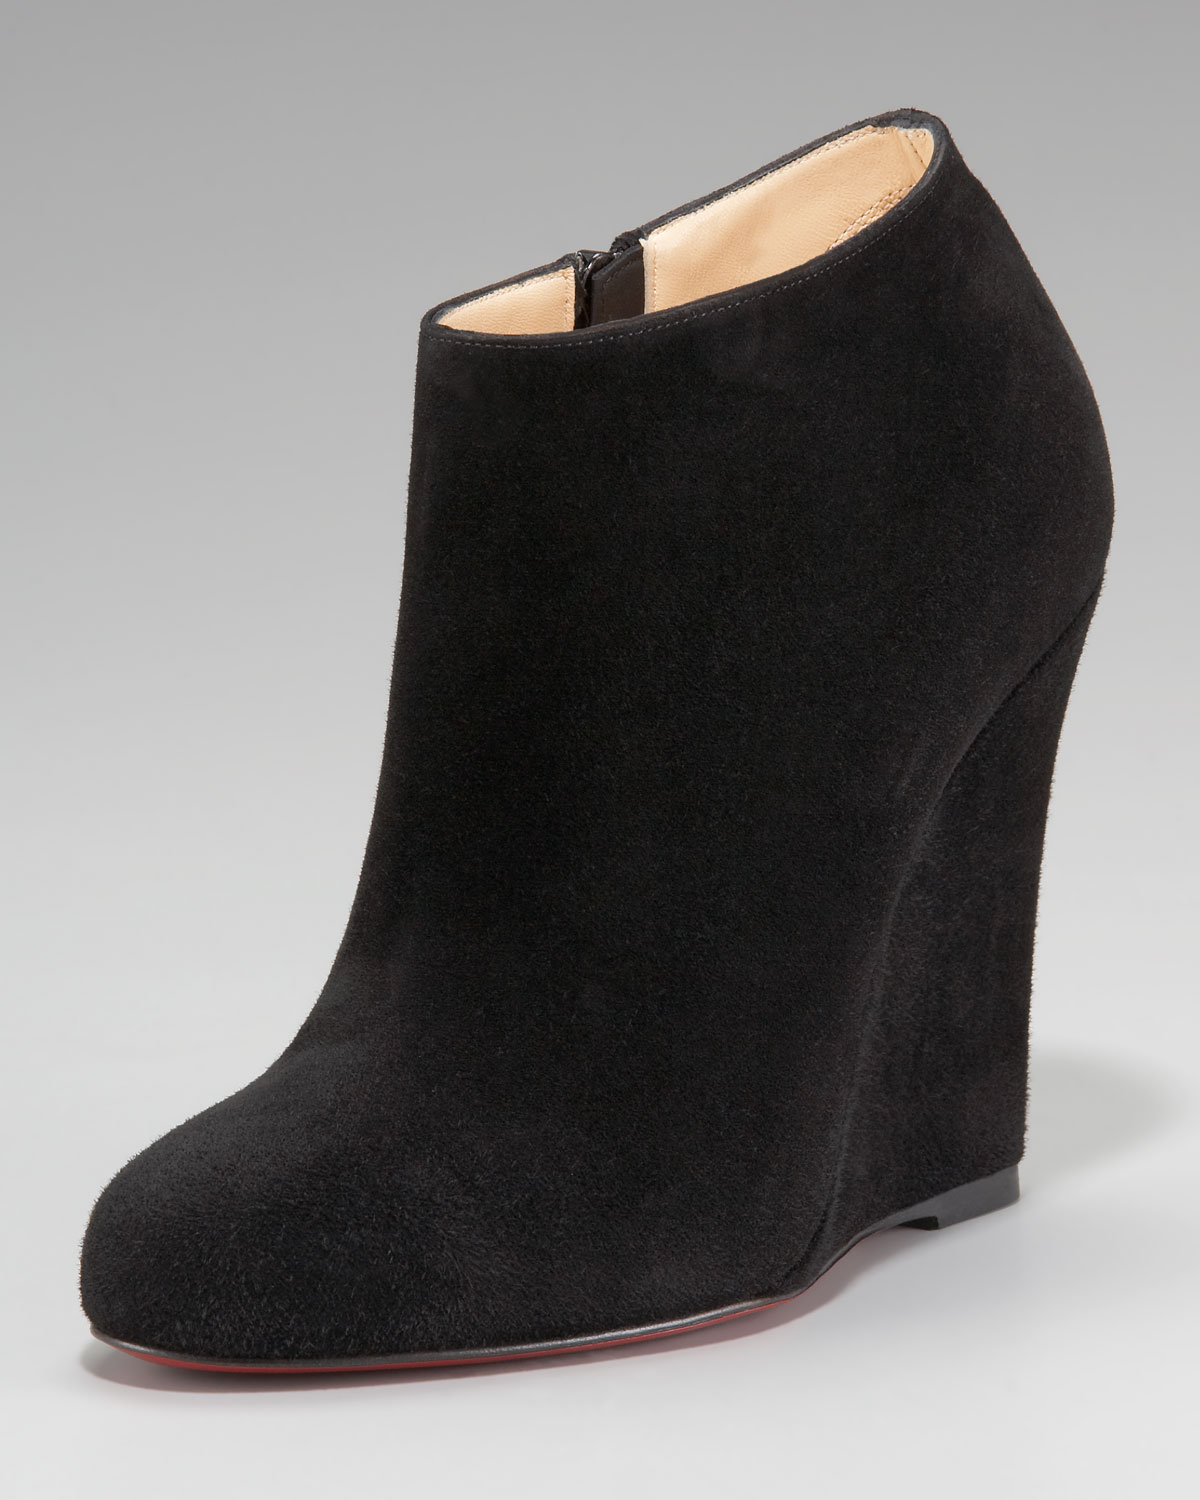 christian louboutin zeppa suede wedge bootie in